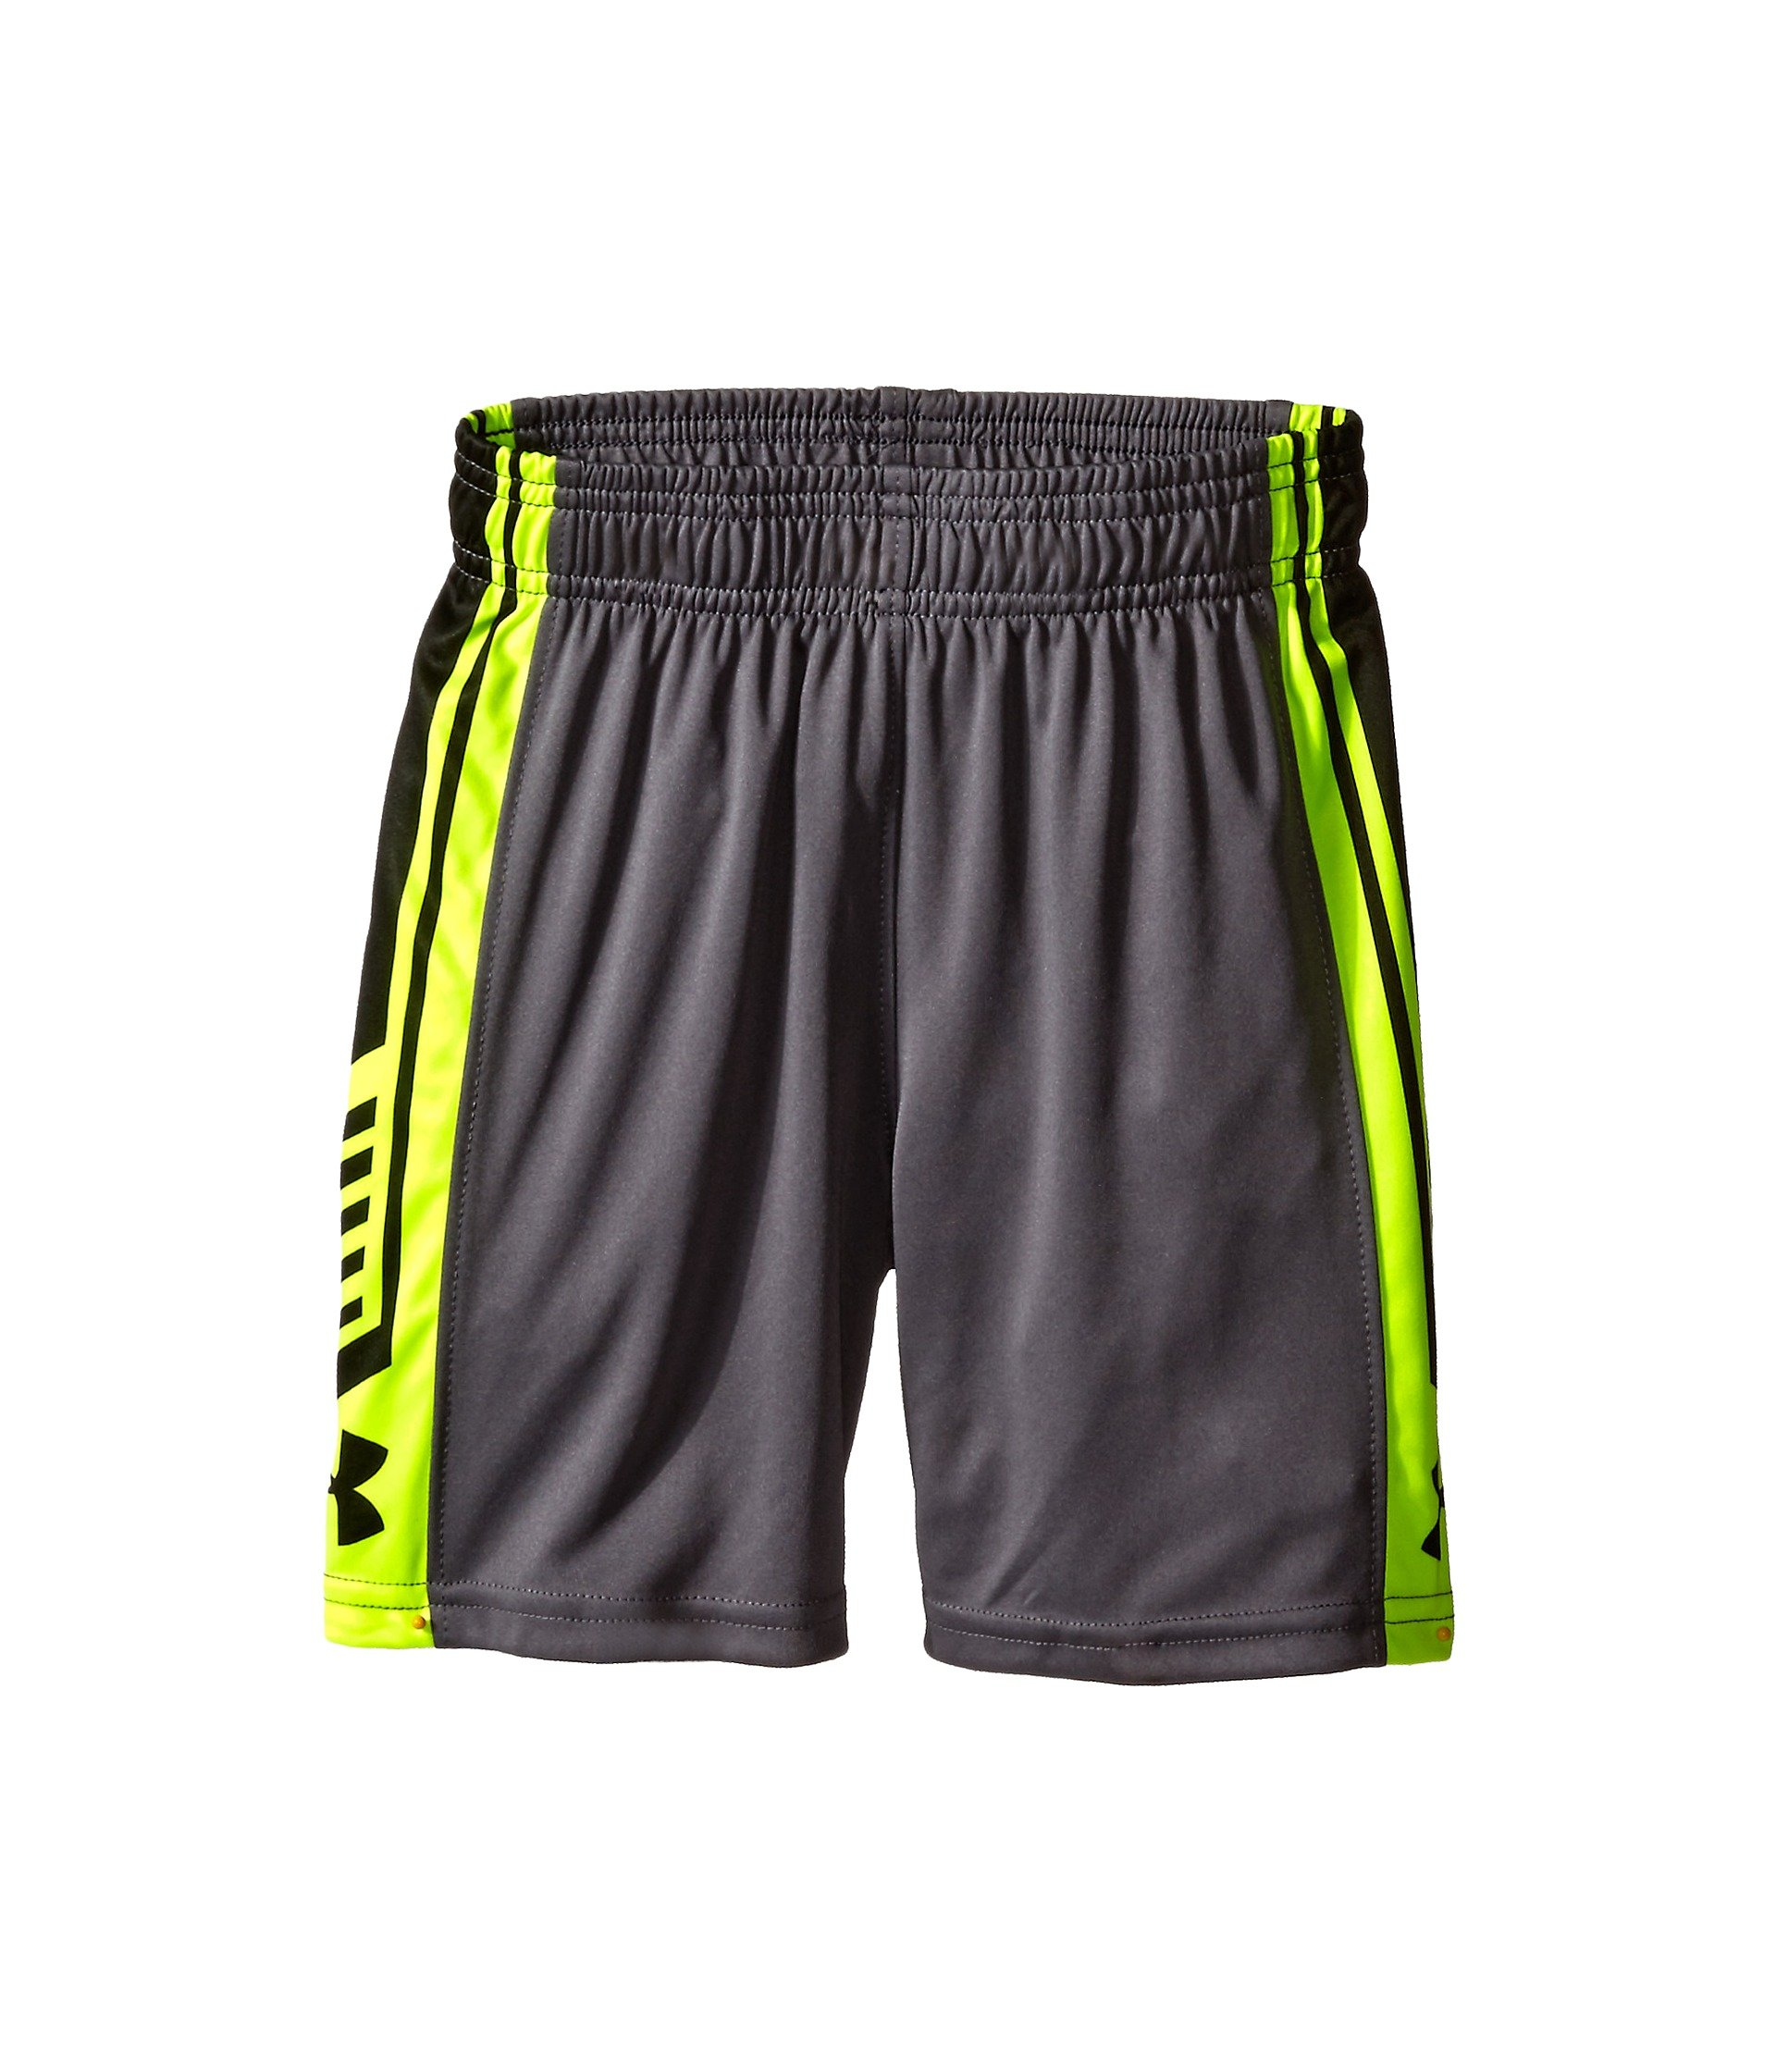 Under Armour Kids Boys Fade Out Shorts (Little Big Kids), Graphite, 5 X One Size